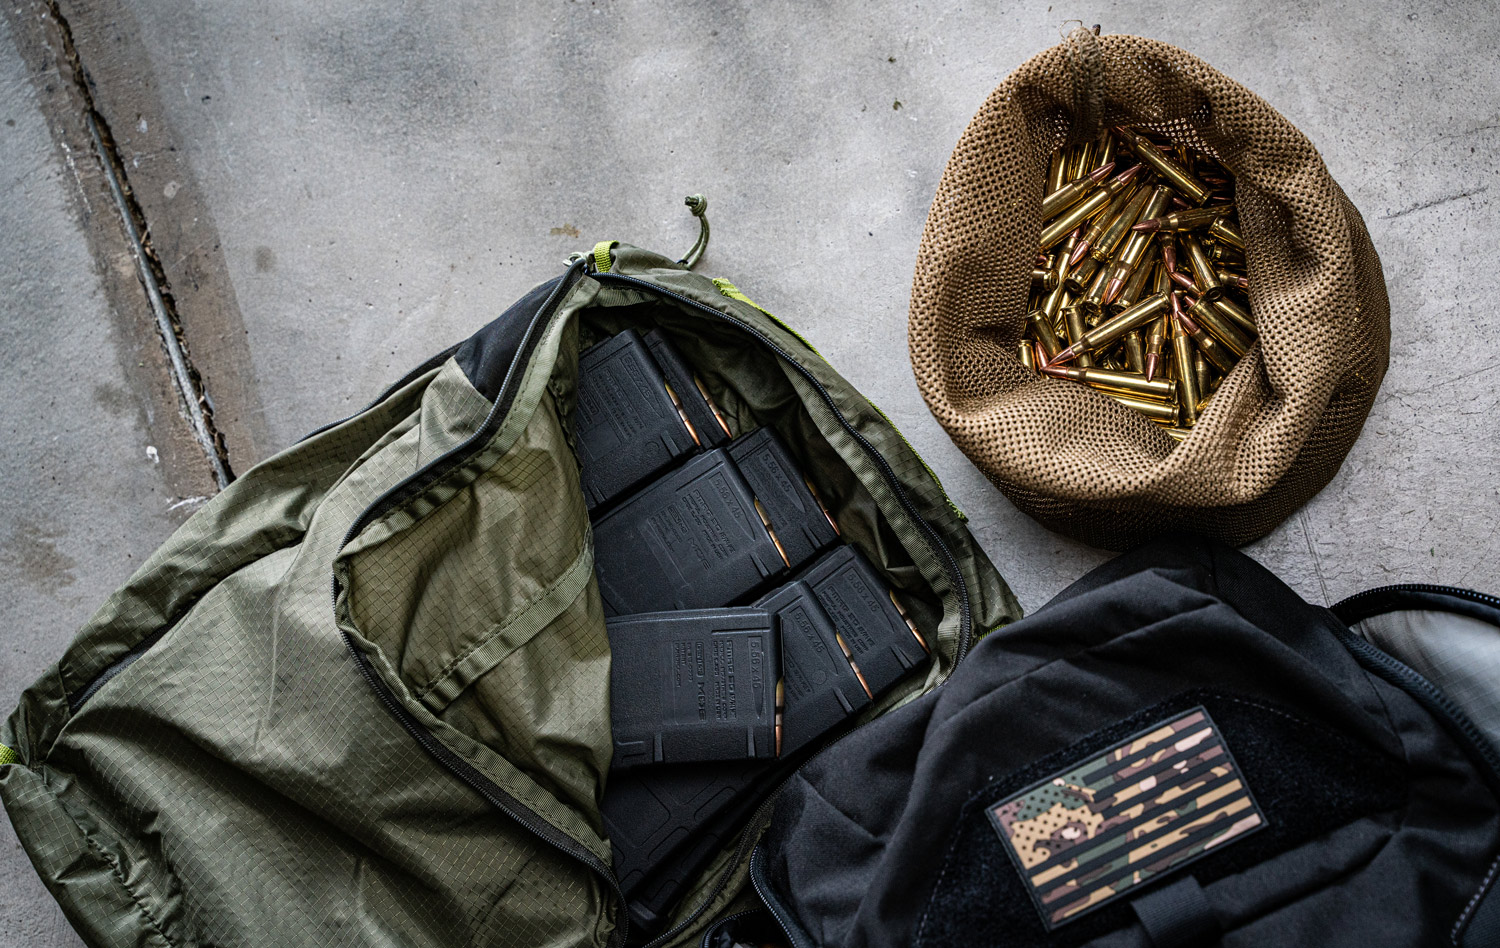 bags loaded up with 223 ammo for a soldier